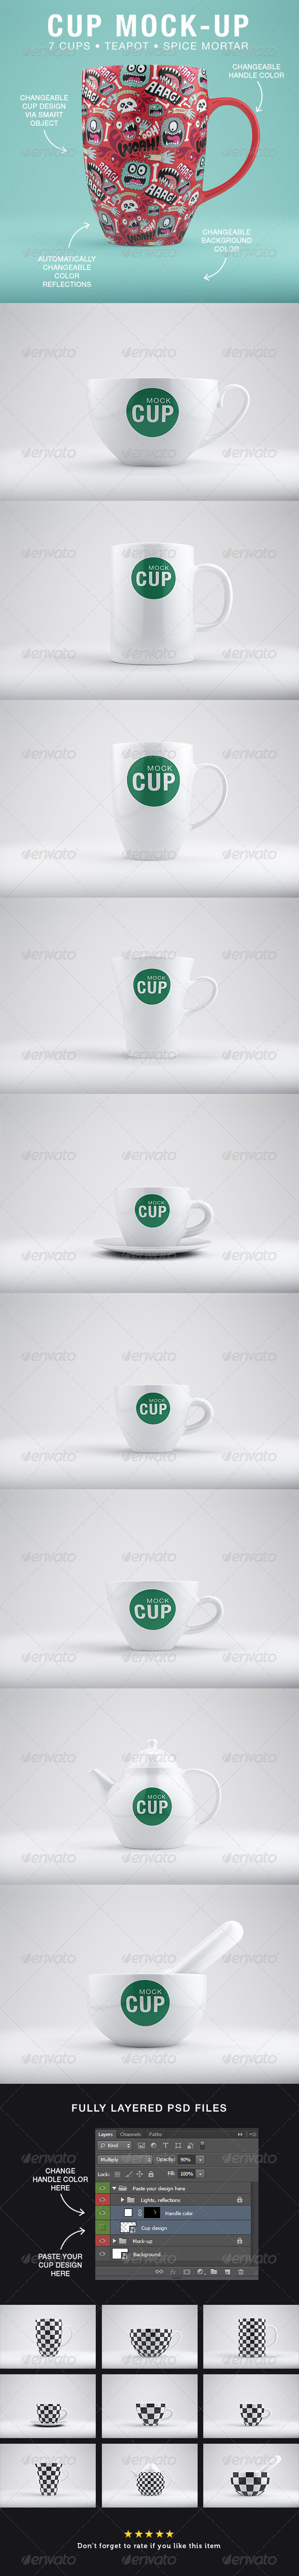 Cup Mock-Up's - Product Mock-Ups Graphics